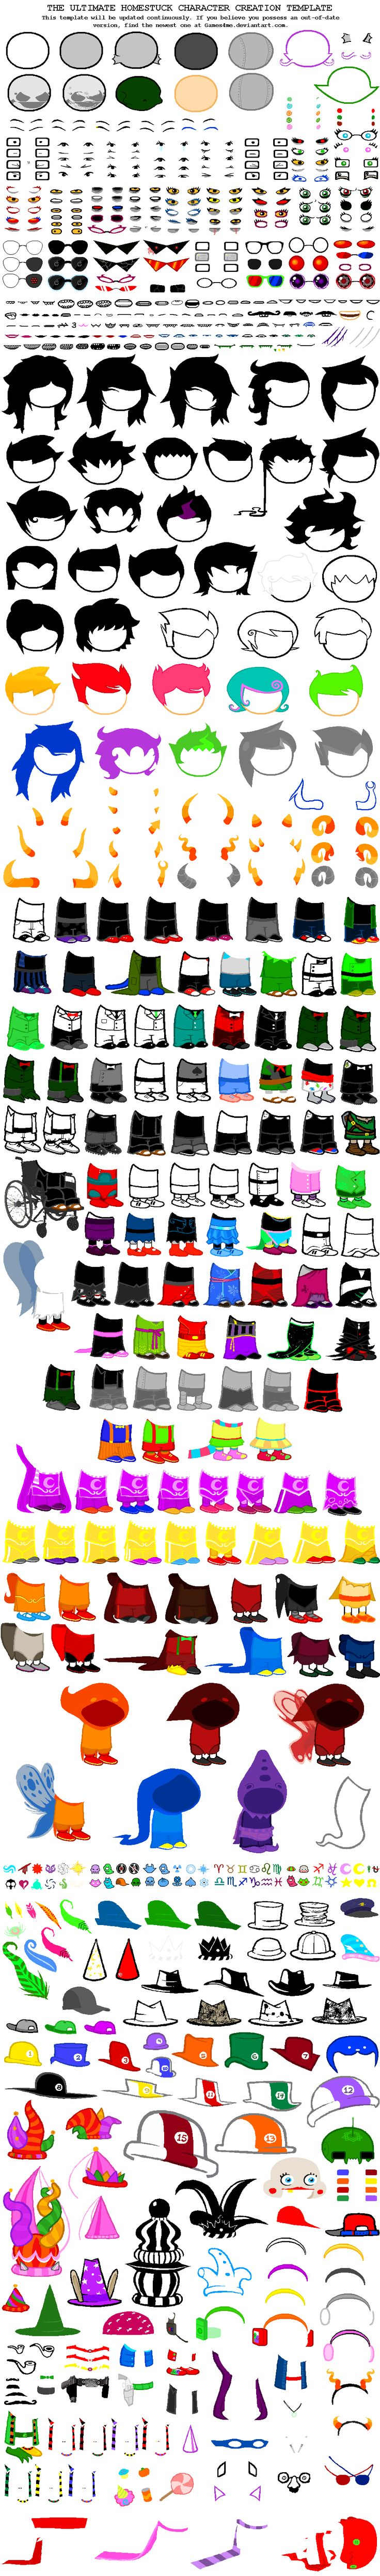 ultimate_homestuck_character_creation_template_by_games4me-d54q282.png (1000×6775)